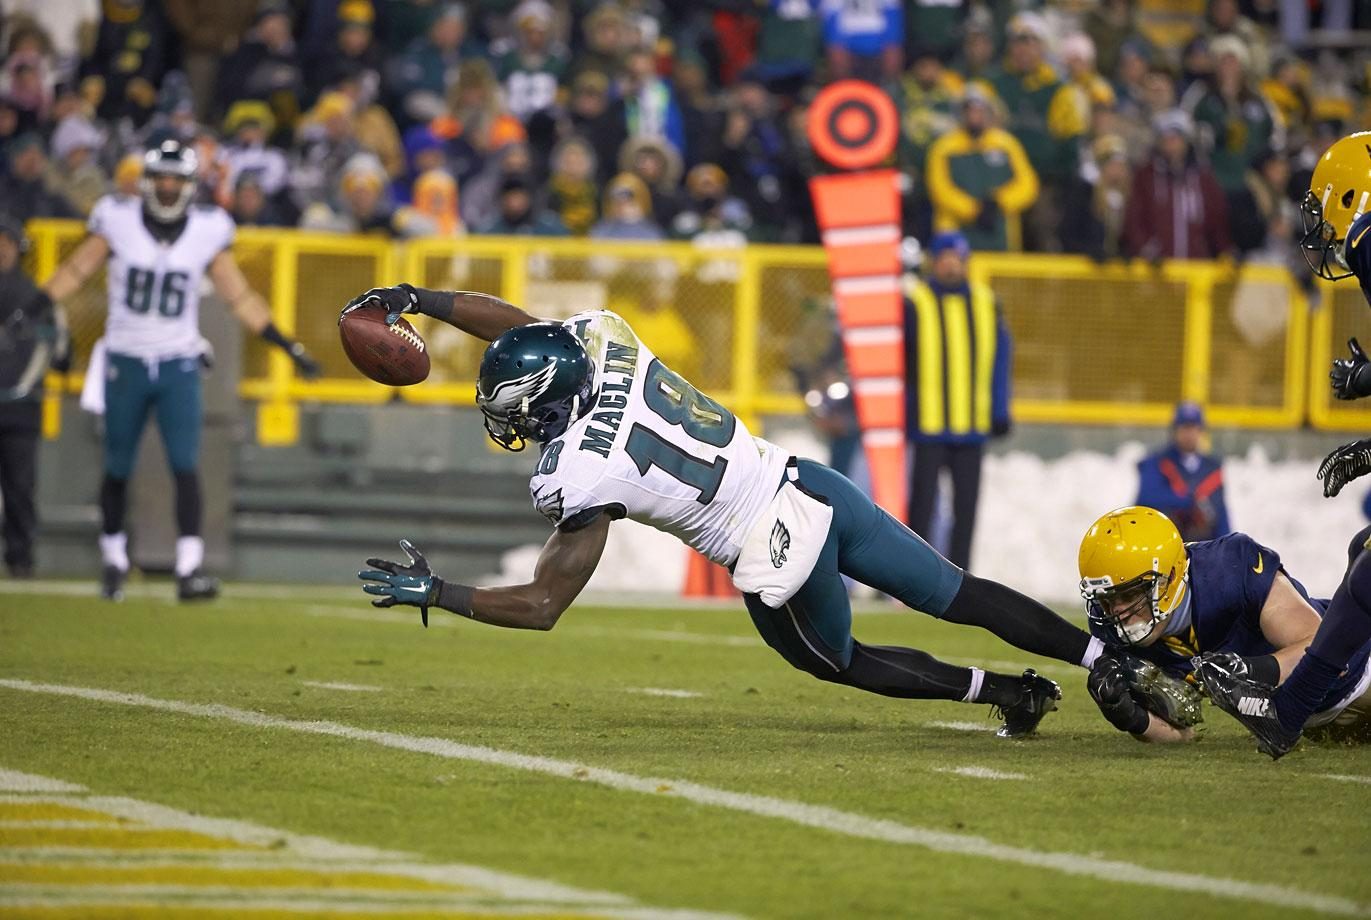 Old team: Eagles; New team: Chiefs